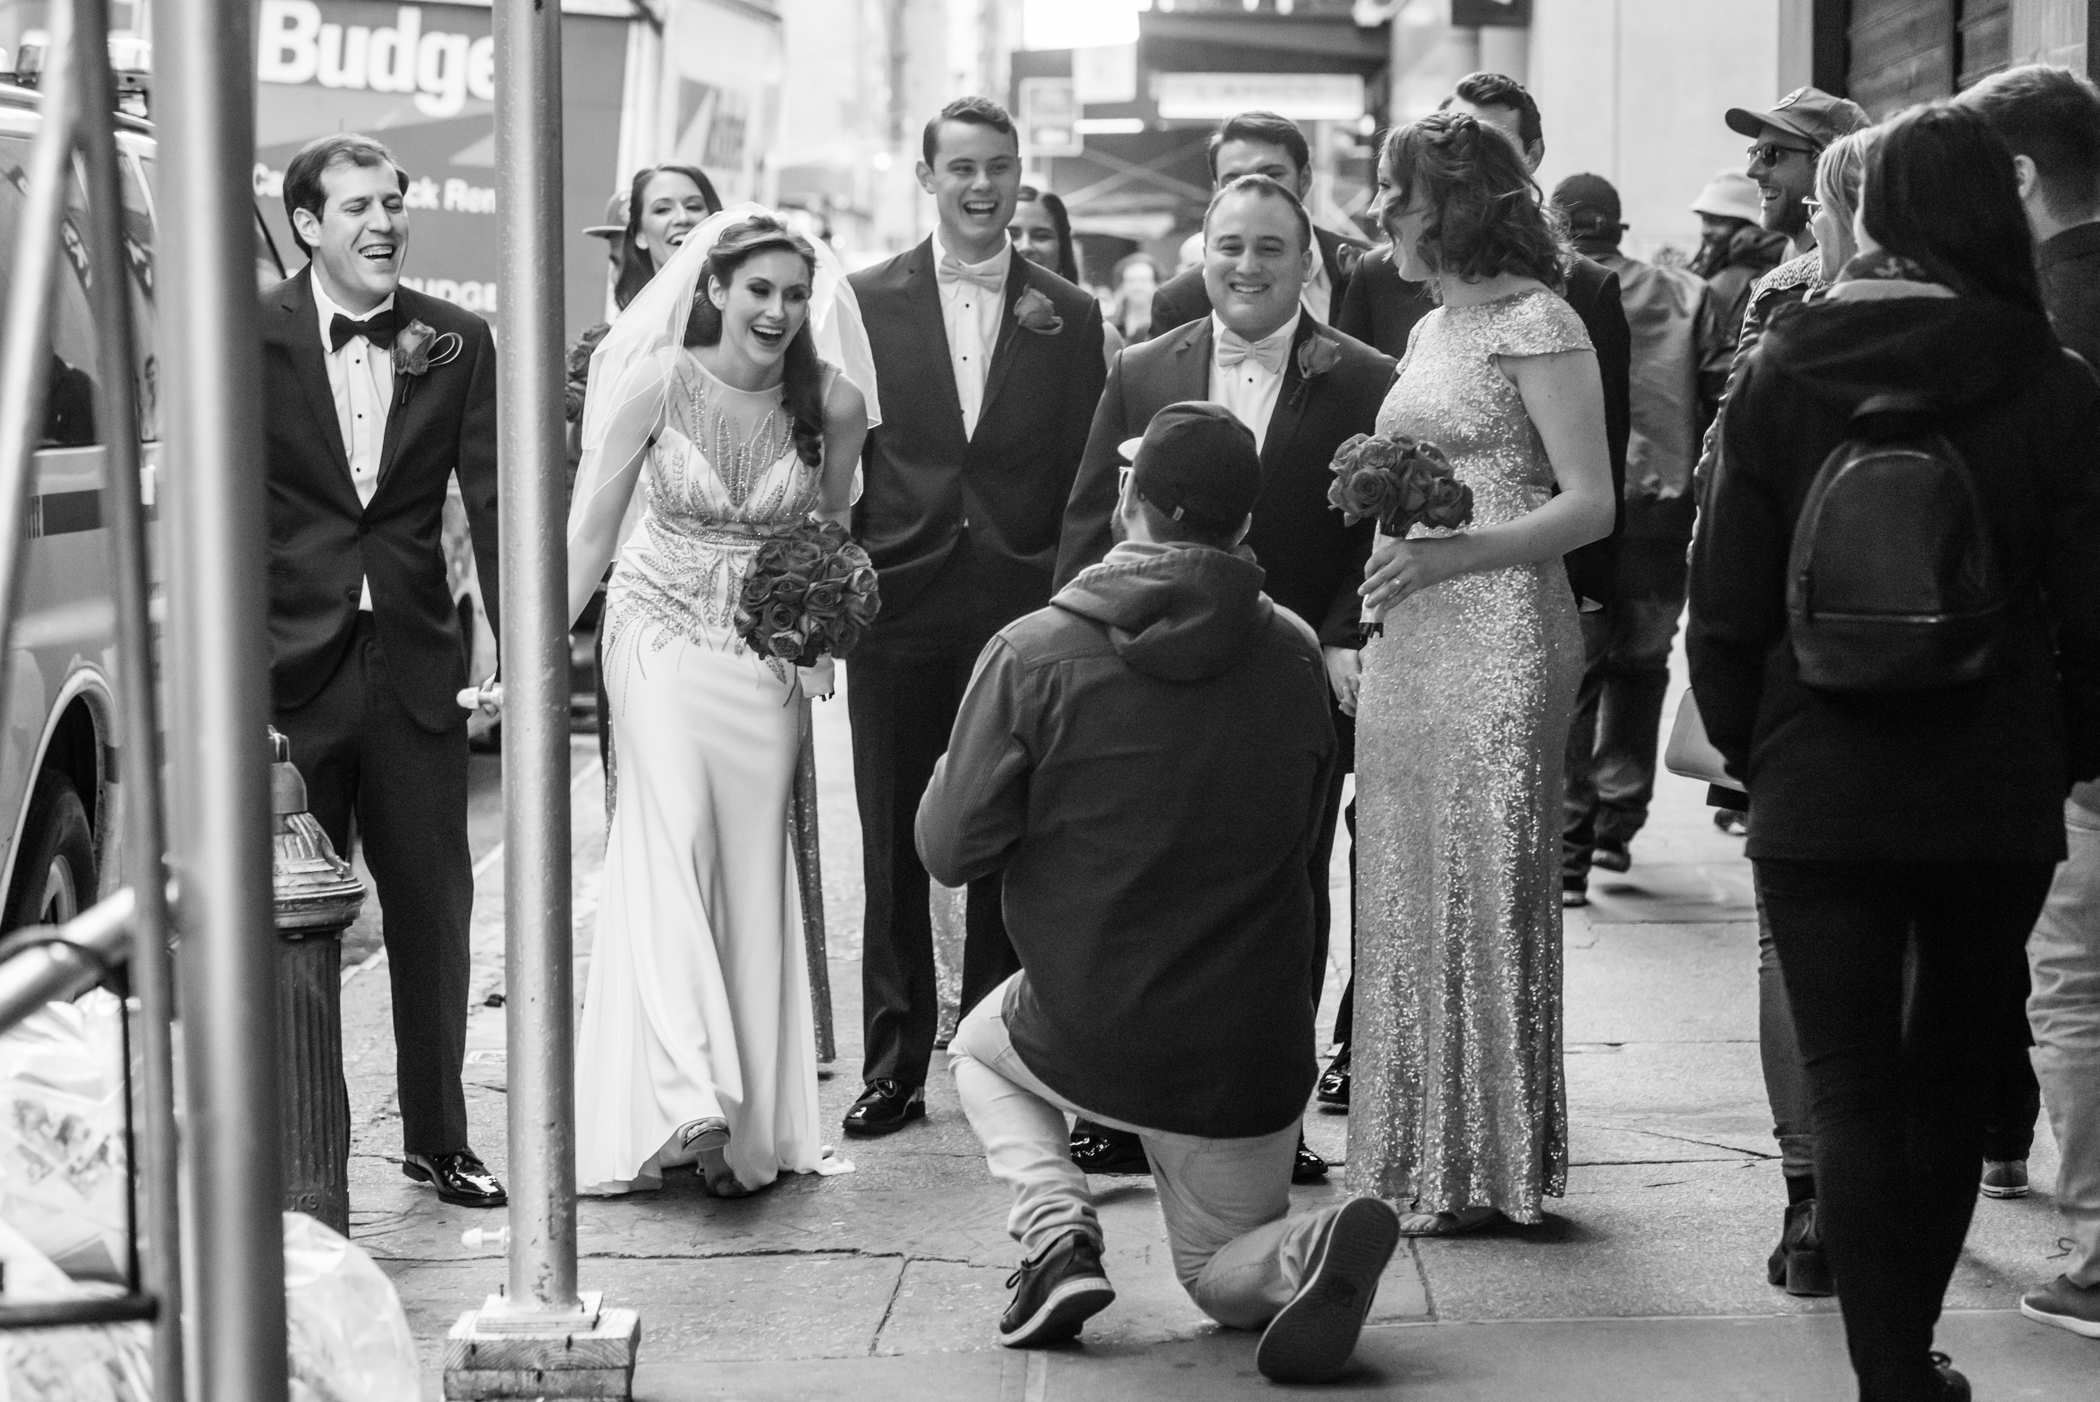 Stefy Hilmer Photography-stranger proposes to bride on NYC street.jpg